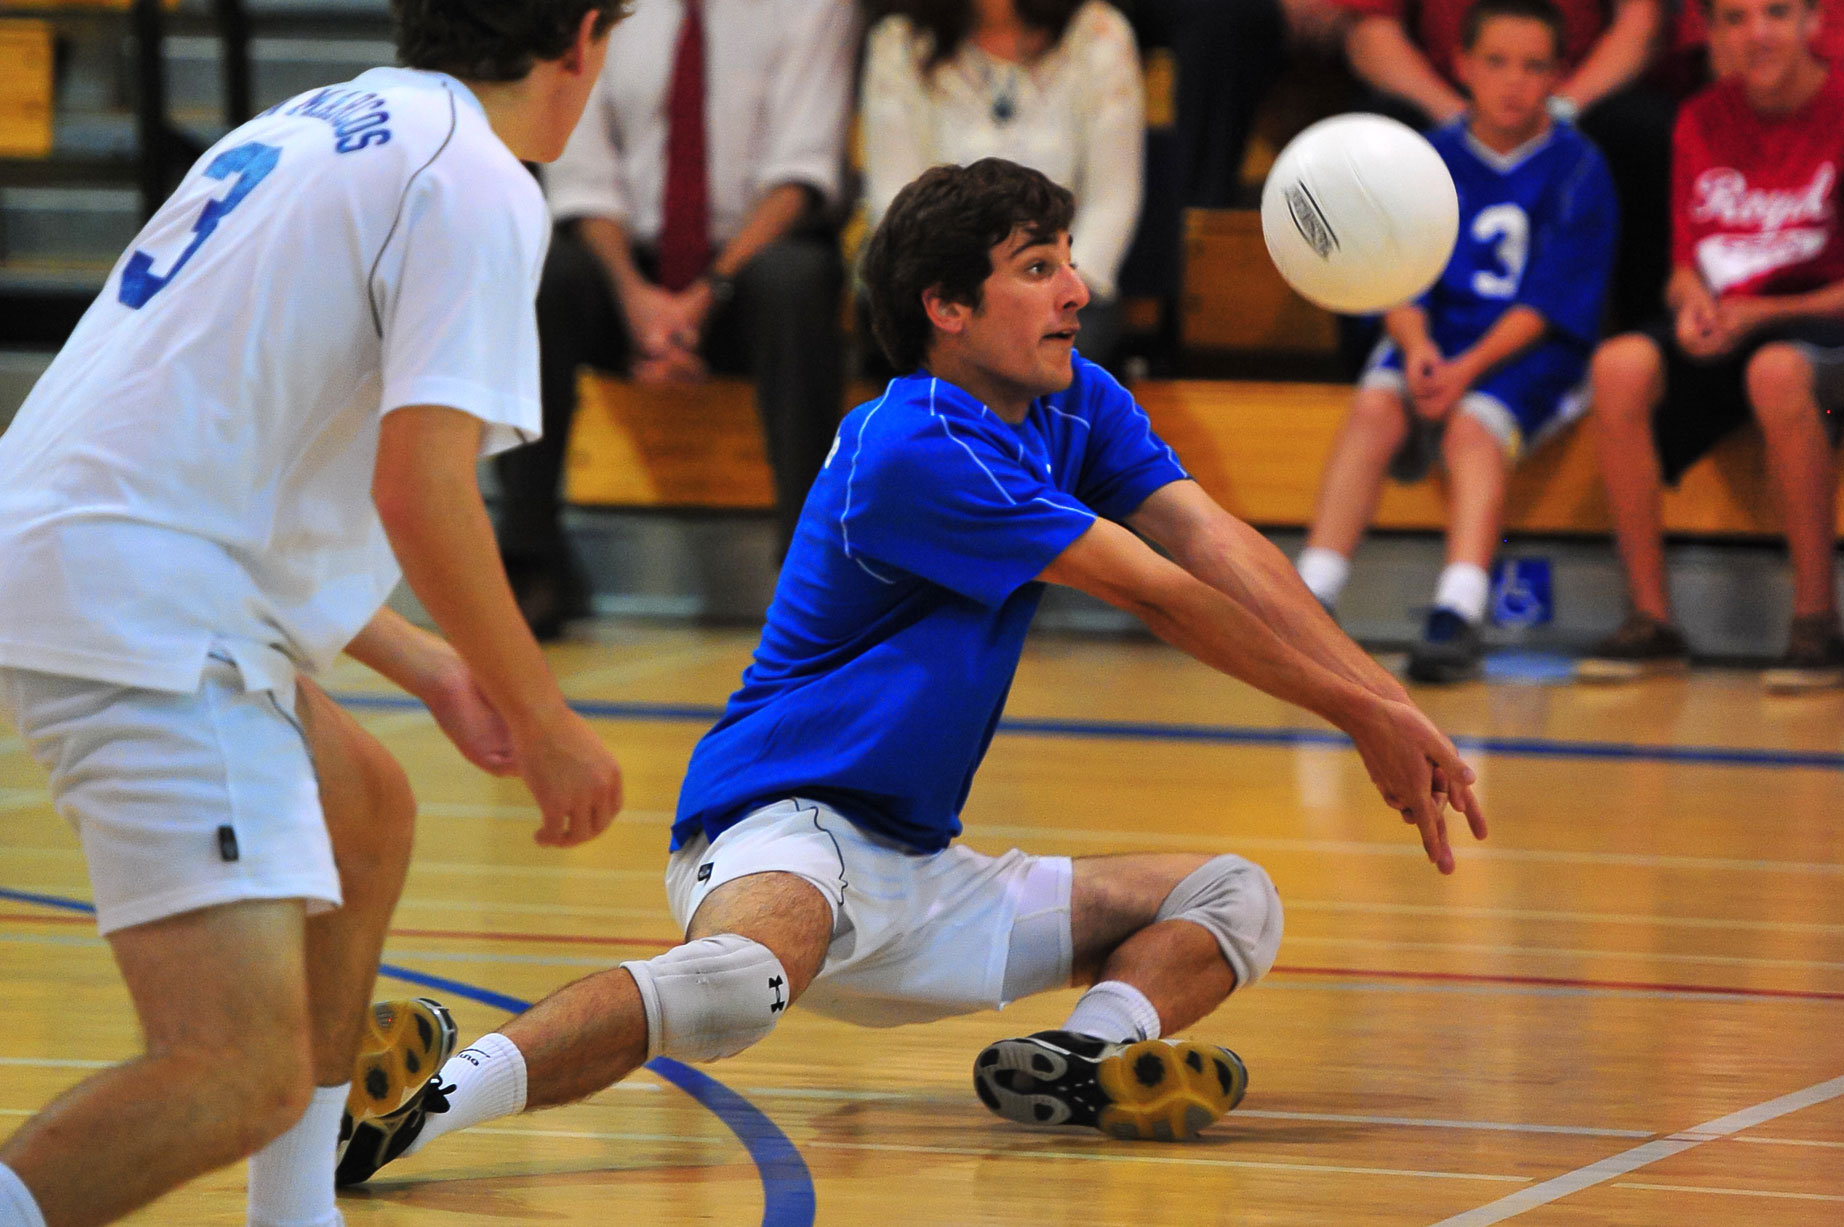 San Marcos' Jackson Kunz was an honorable mention for athlete of the week for leading the Royals to a big Channel League victory over Santa Barbara High. (Vince Agapito Photo)